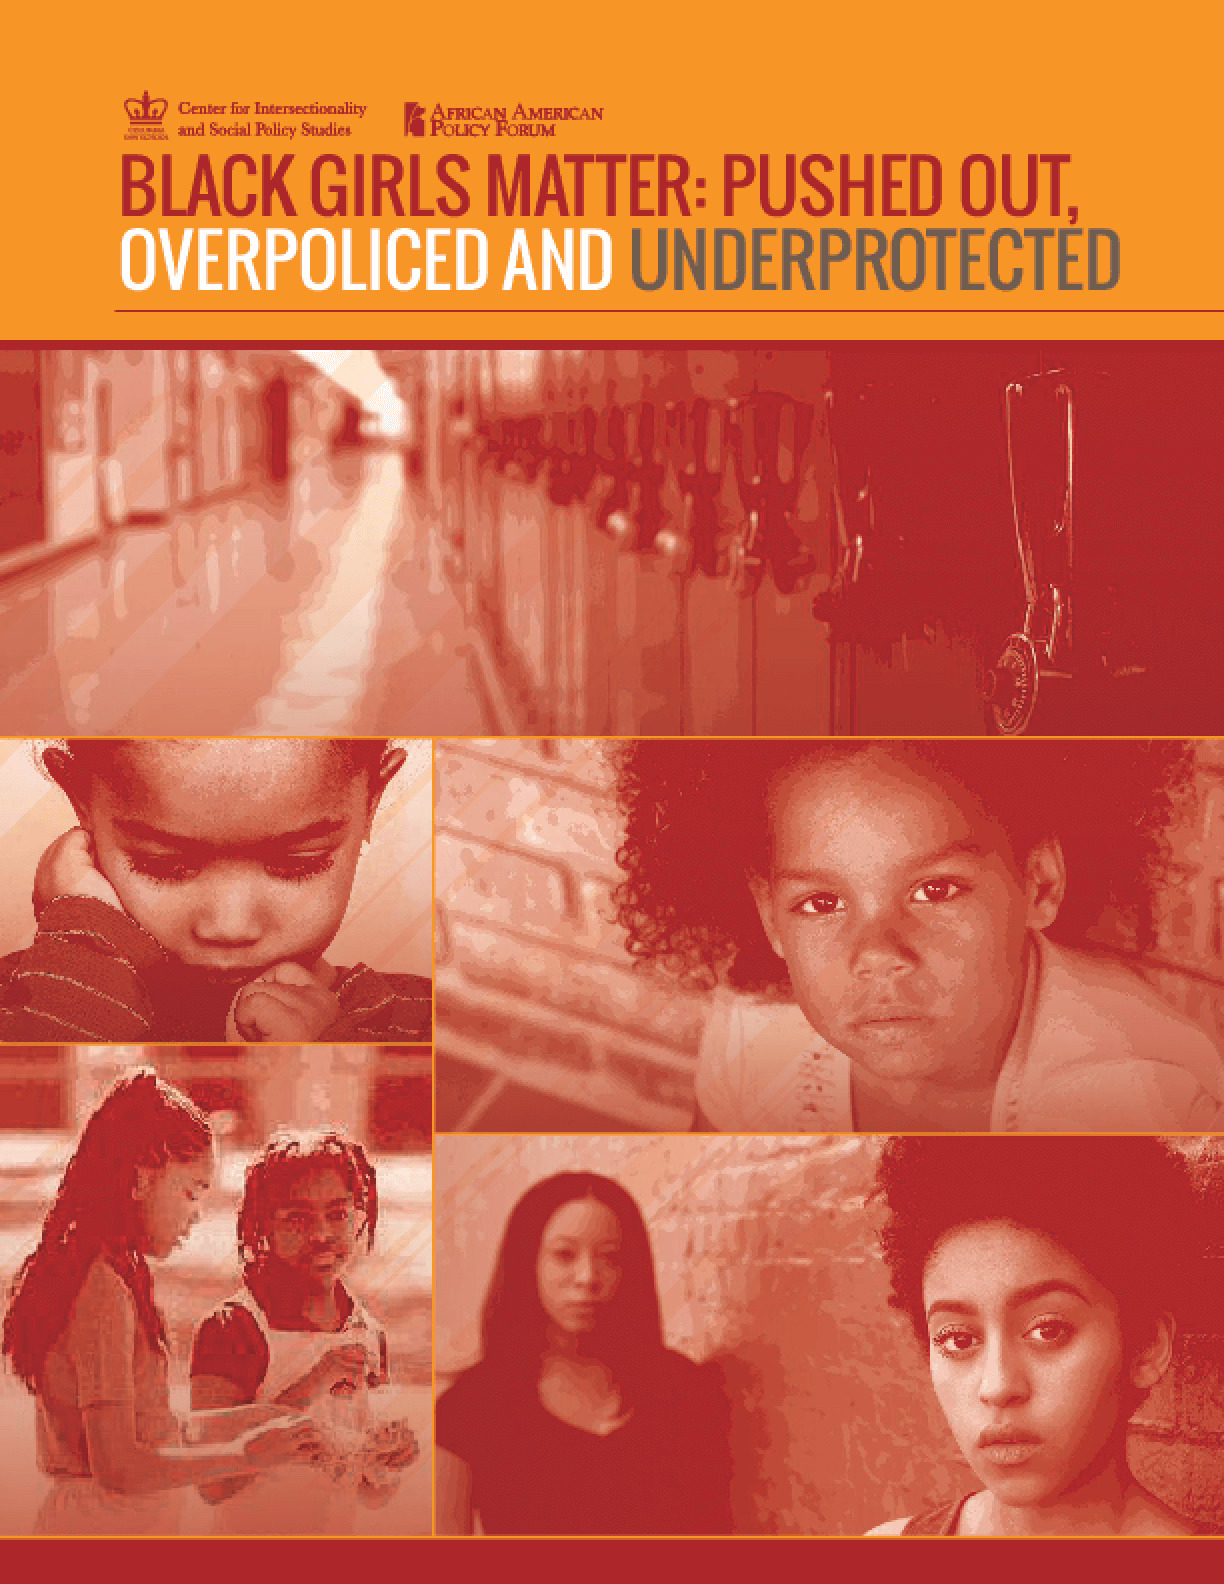 Black Girls Matter: Pushed Out, Overpoliced and Underprotected